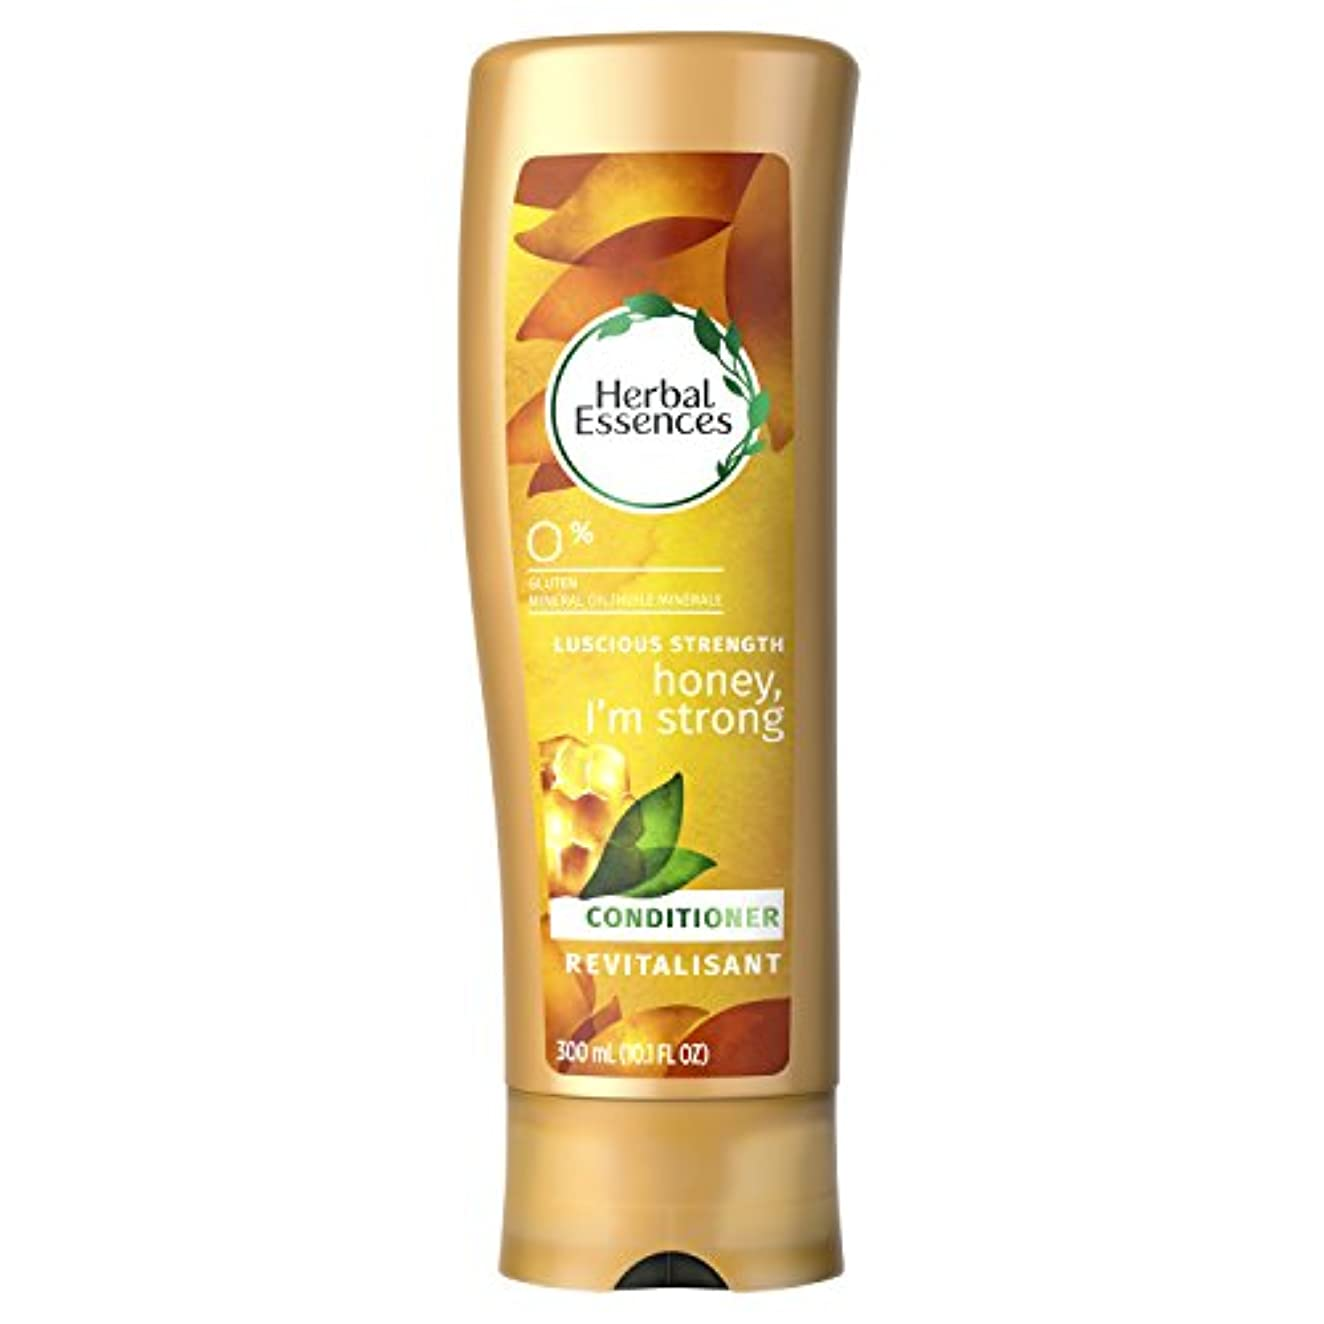 時間とともに病Herbal Essences Honey I'm Strong Strengthening Conditioner, 10.1 Fluid Ounce by Procter & Gamble - HABA Hub [並行輸入品]